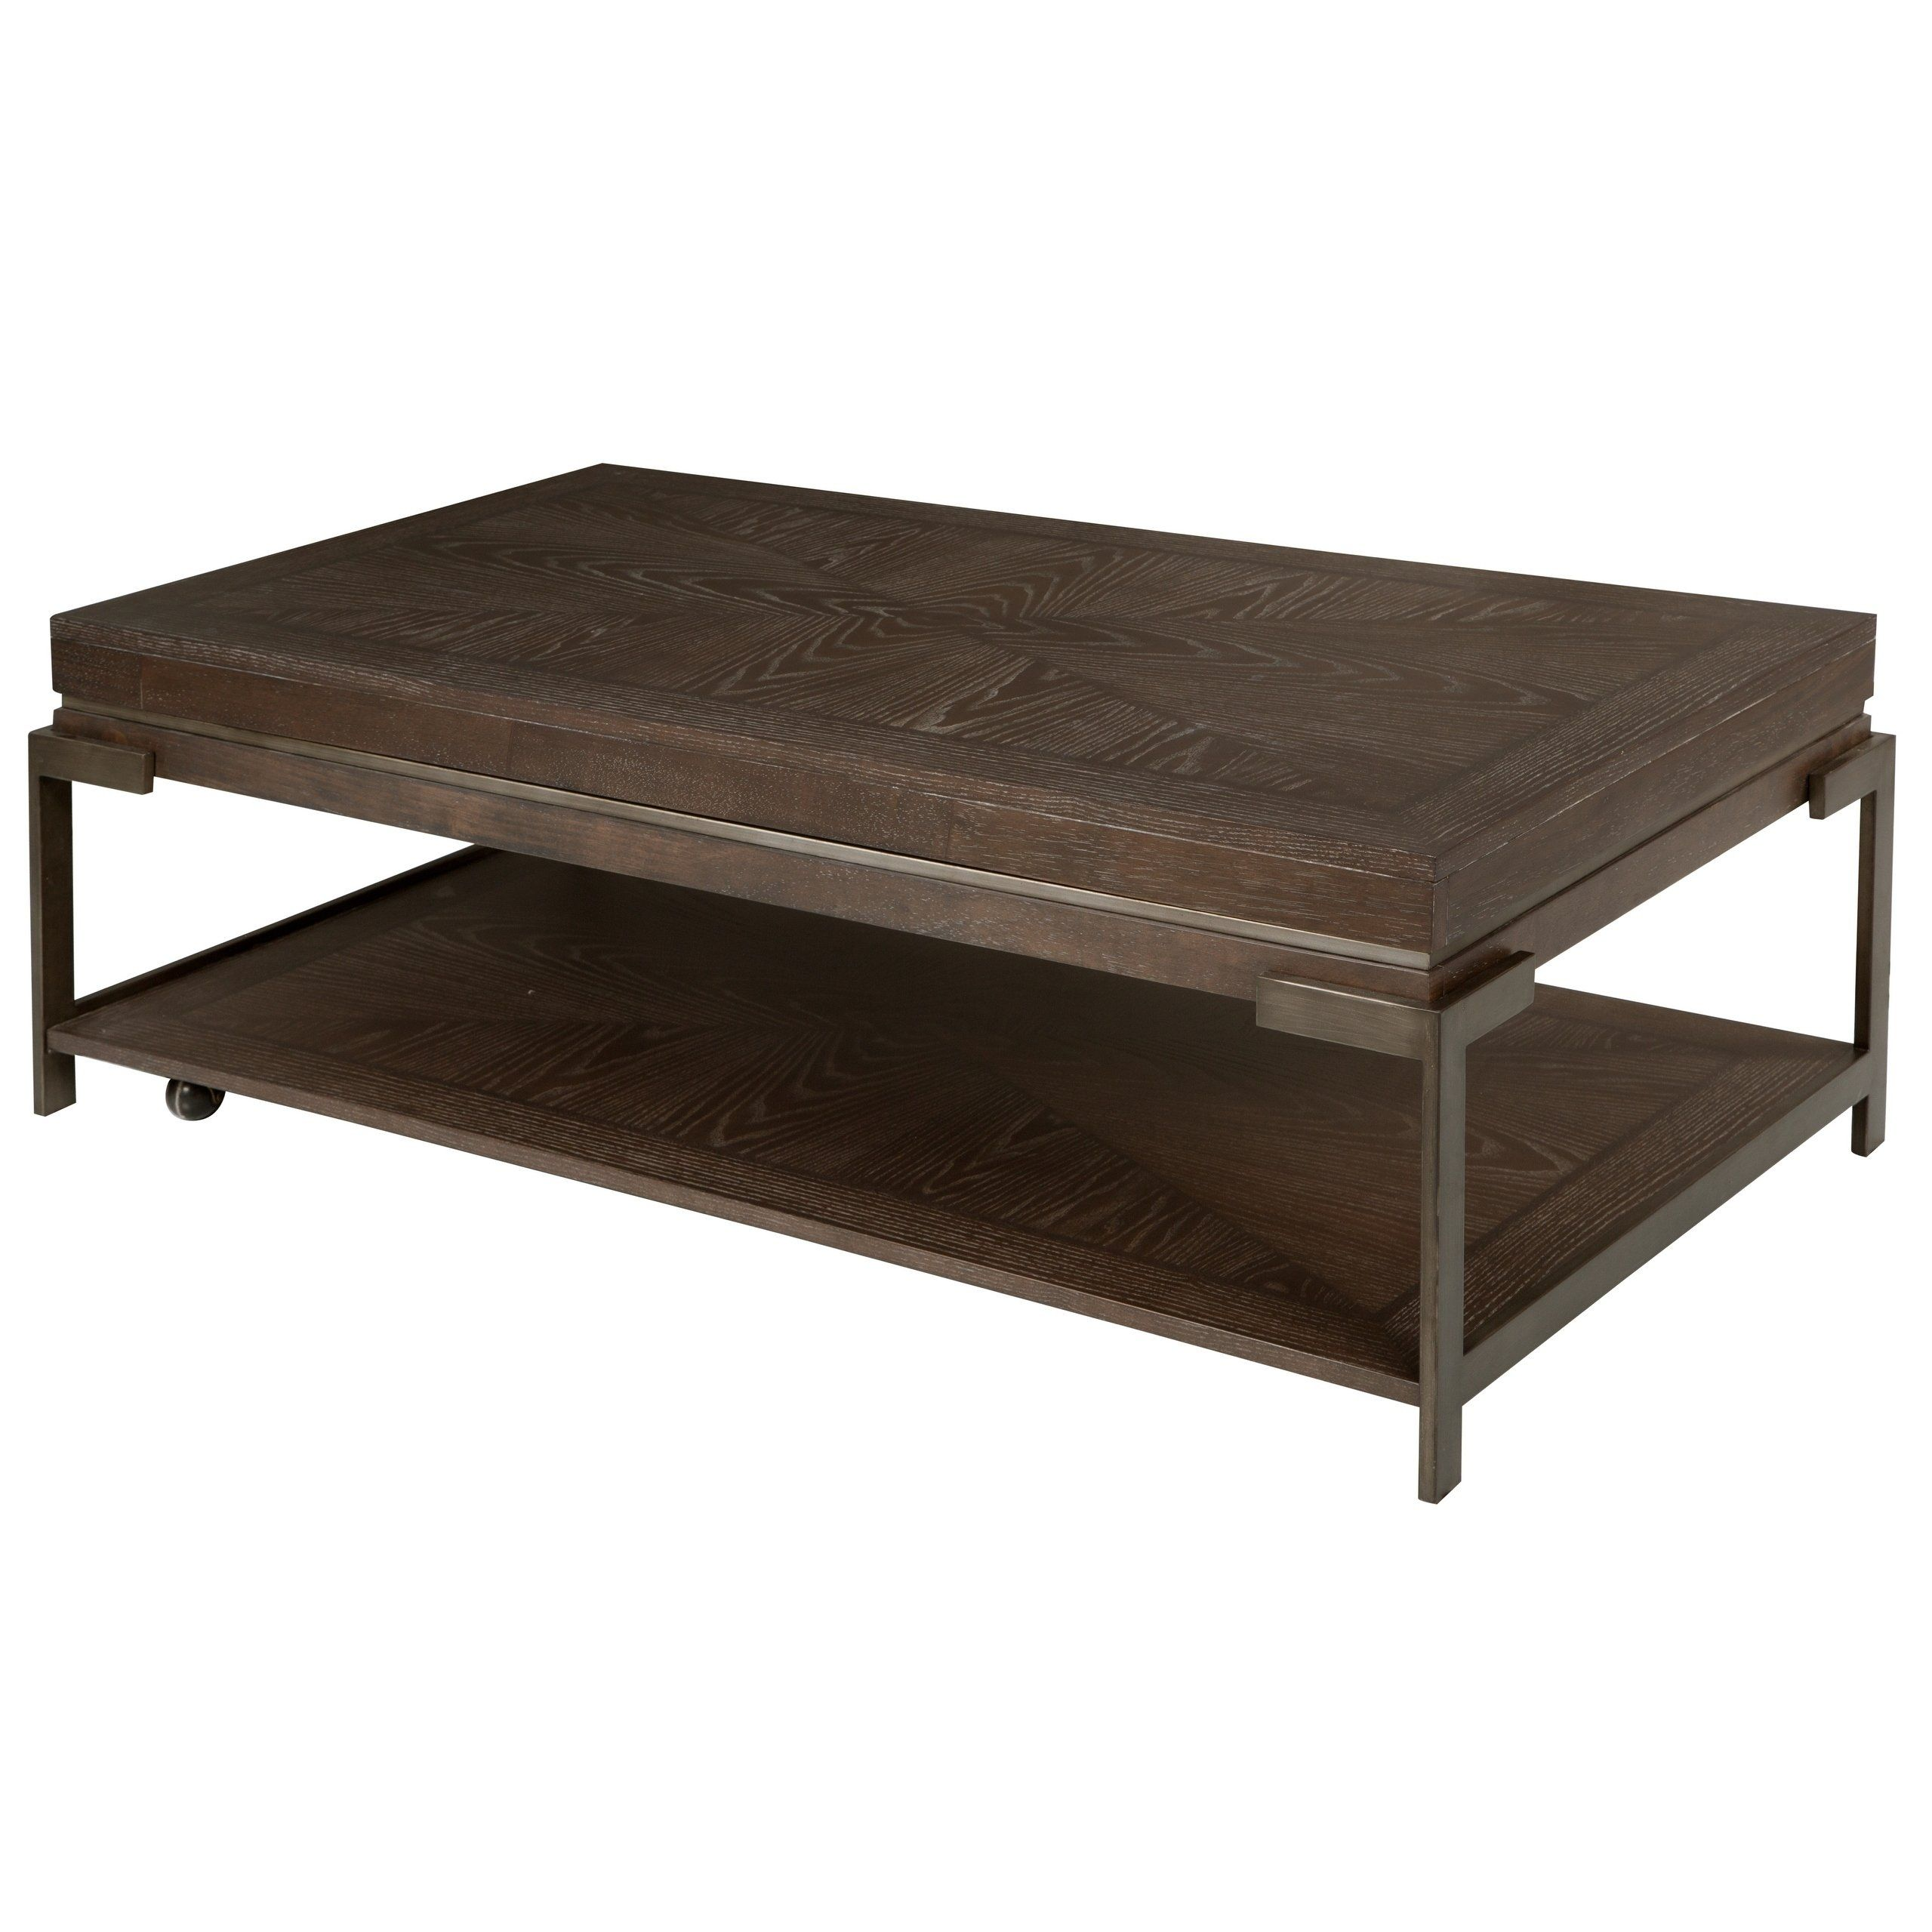 Surprising Thorton Contemporary Espresso Lift Top Coffee Table Brown Cjindustries Chair Design For Home Cjindustriesco